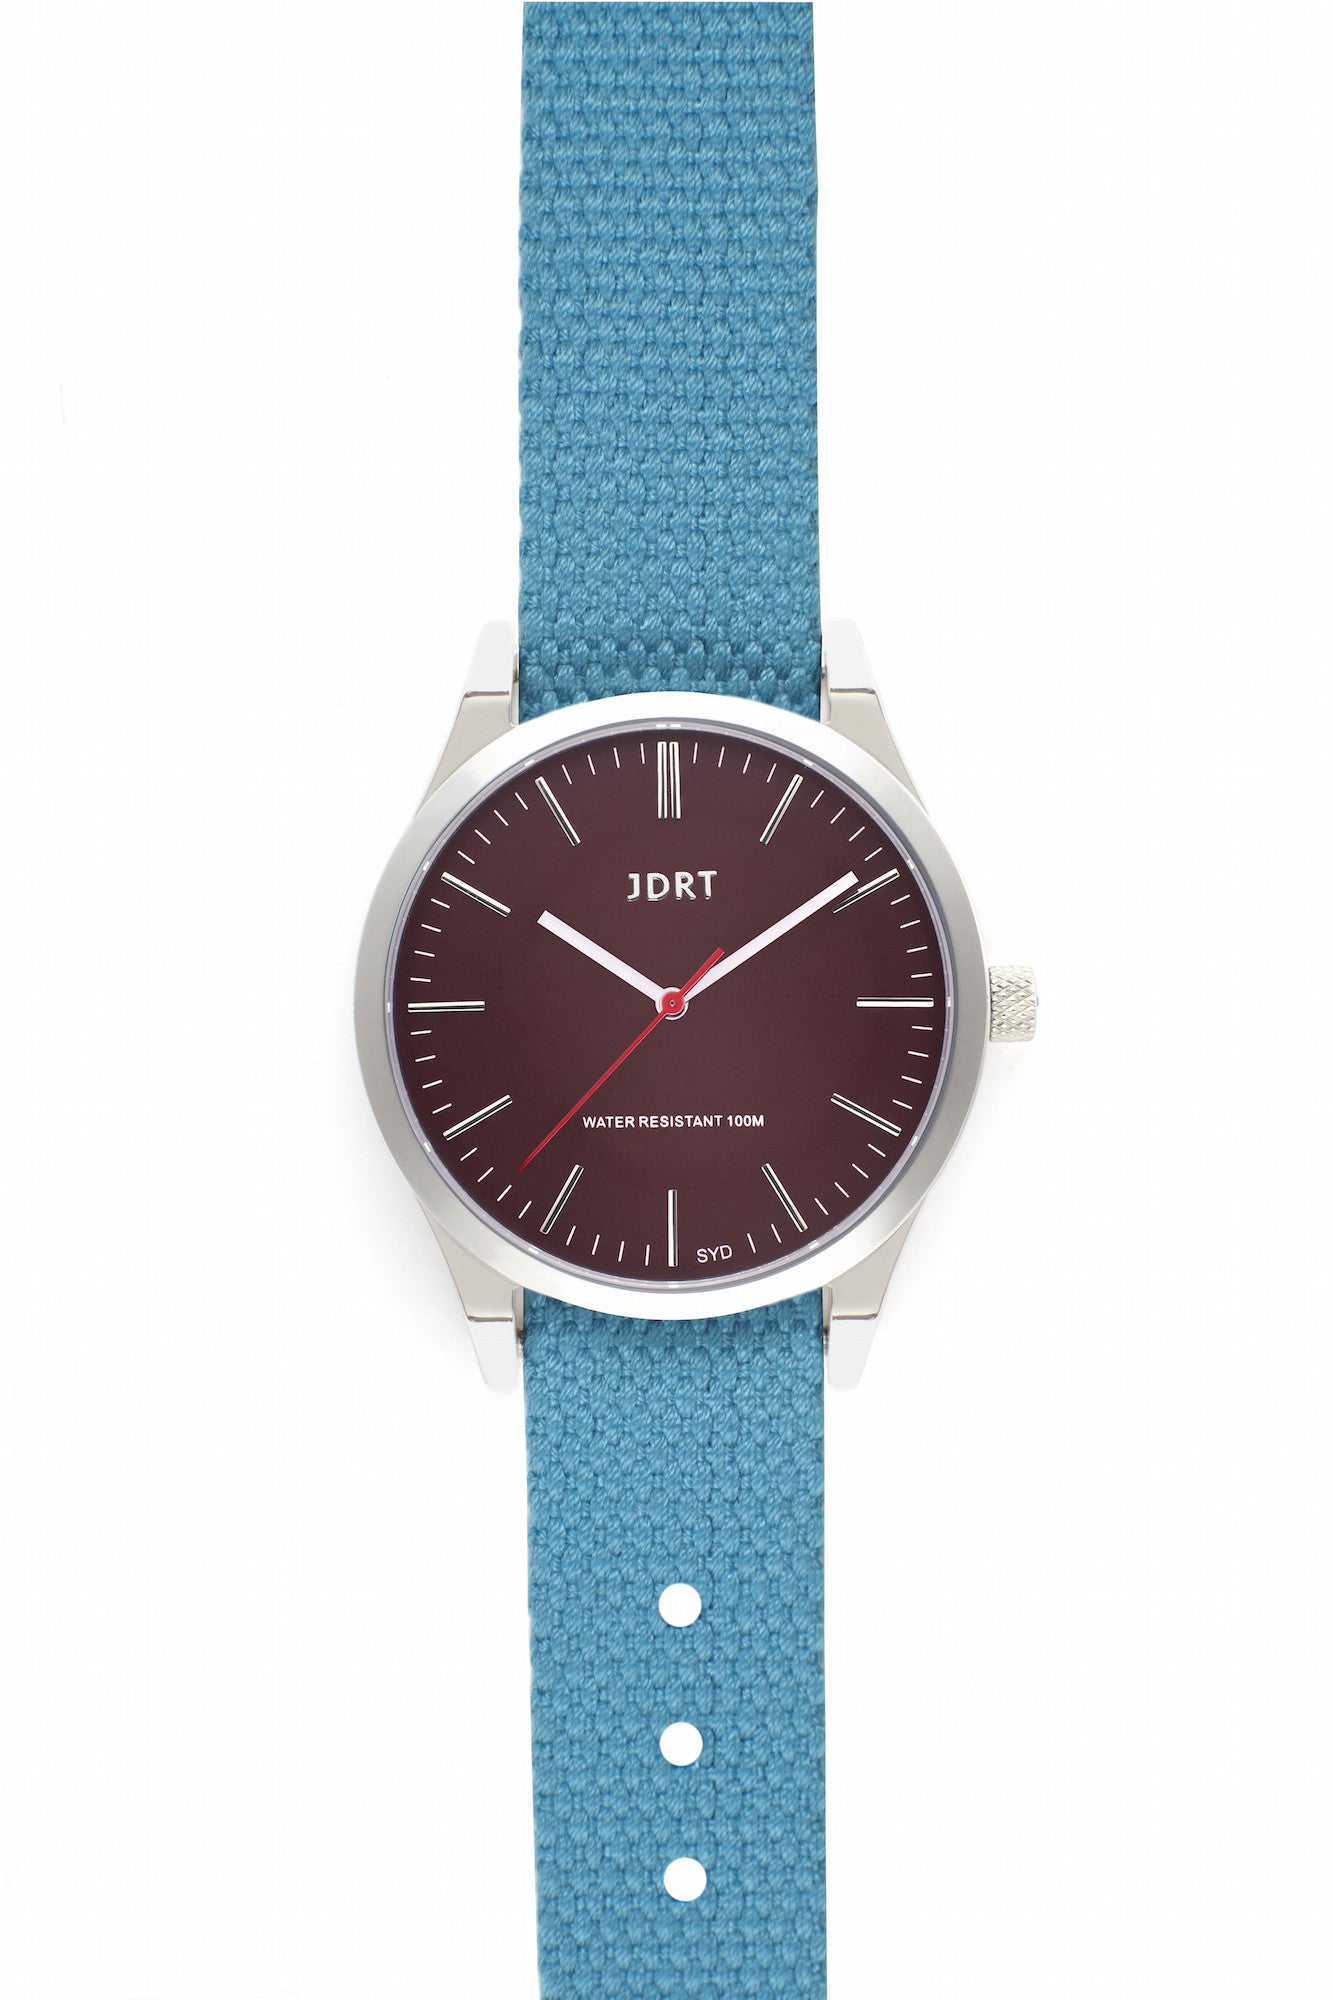 Oxblood Face with Caribbean Canvas Watch Band